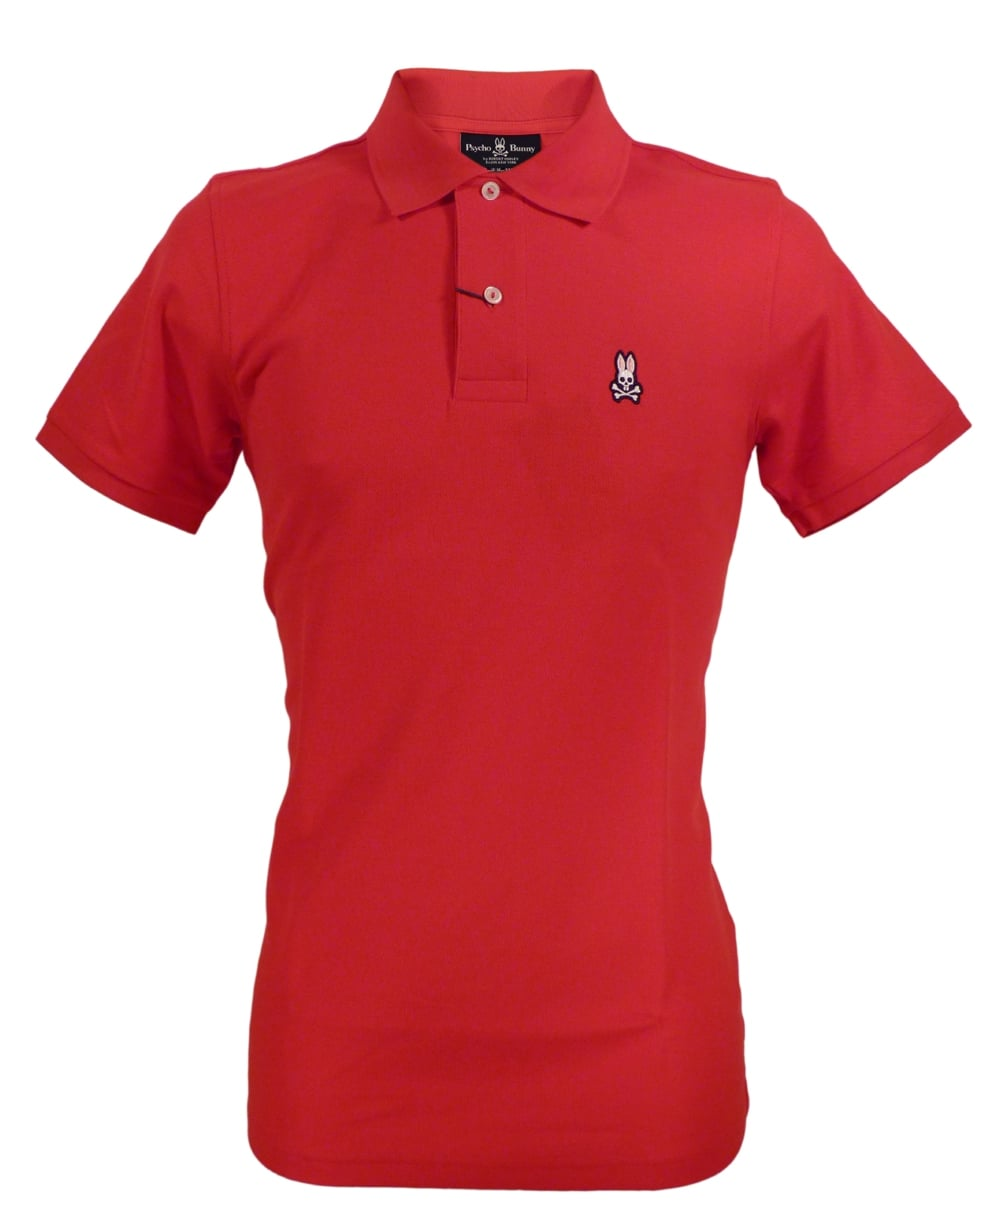 red-16kr00-pima-cotton-classic-polo-p59702-73159_zoom